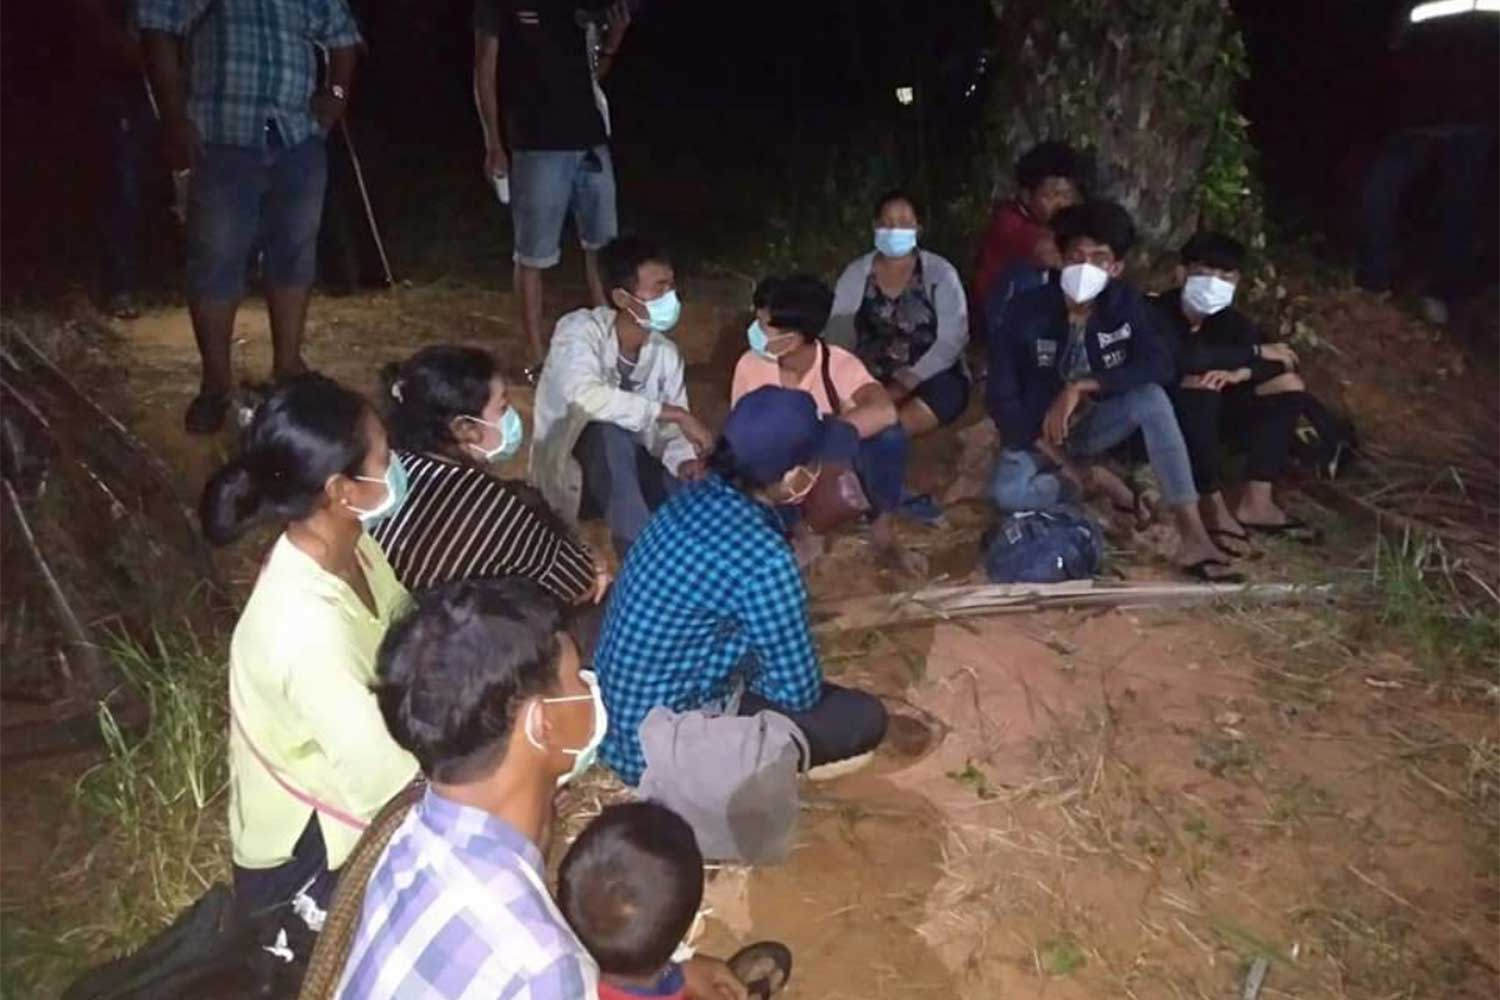 Twelve migrants from Myanmar are detained at the rubber plantation where they were caught after sneaking over the border in Muang district of Prachuap Khiri Khan early Saturday. (Supplied photo via Chaiyot Satyaem)